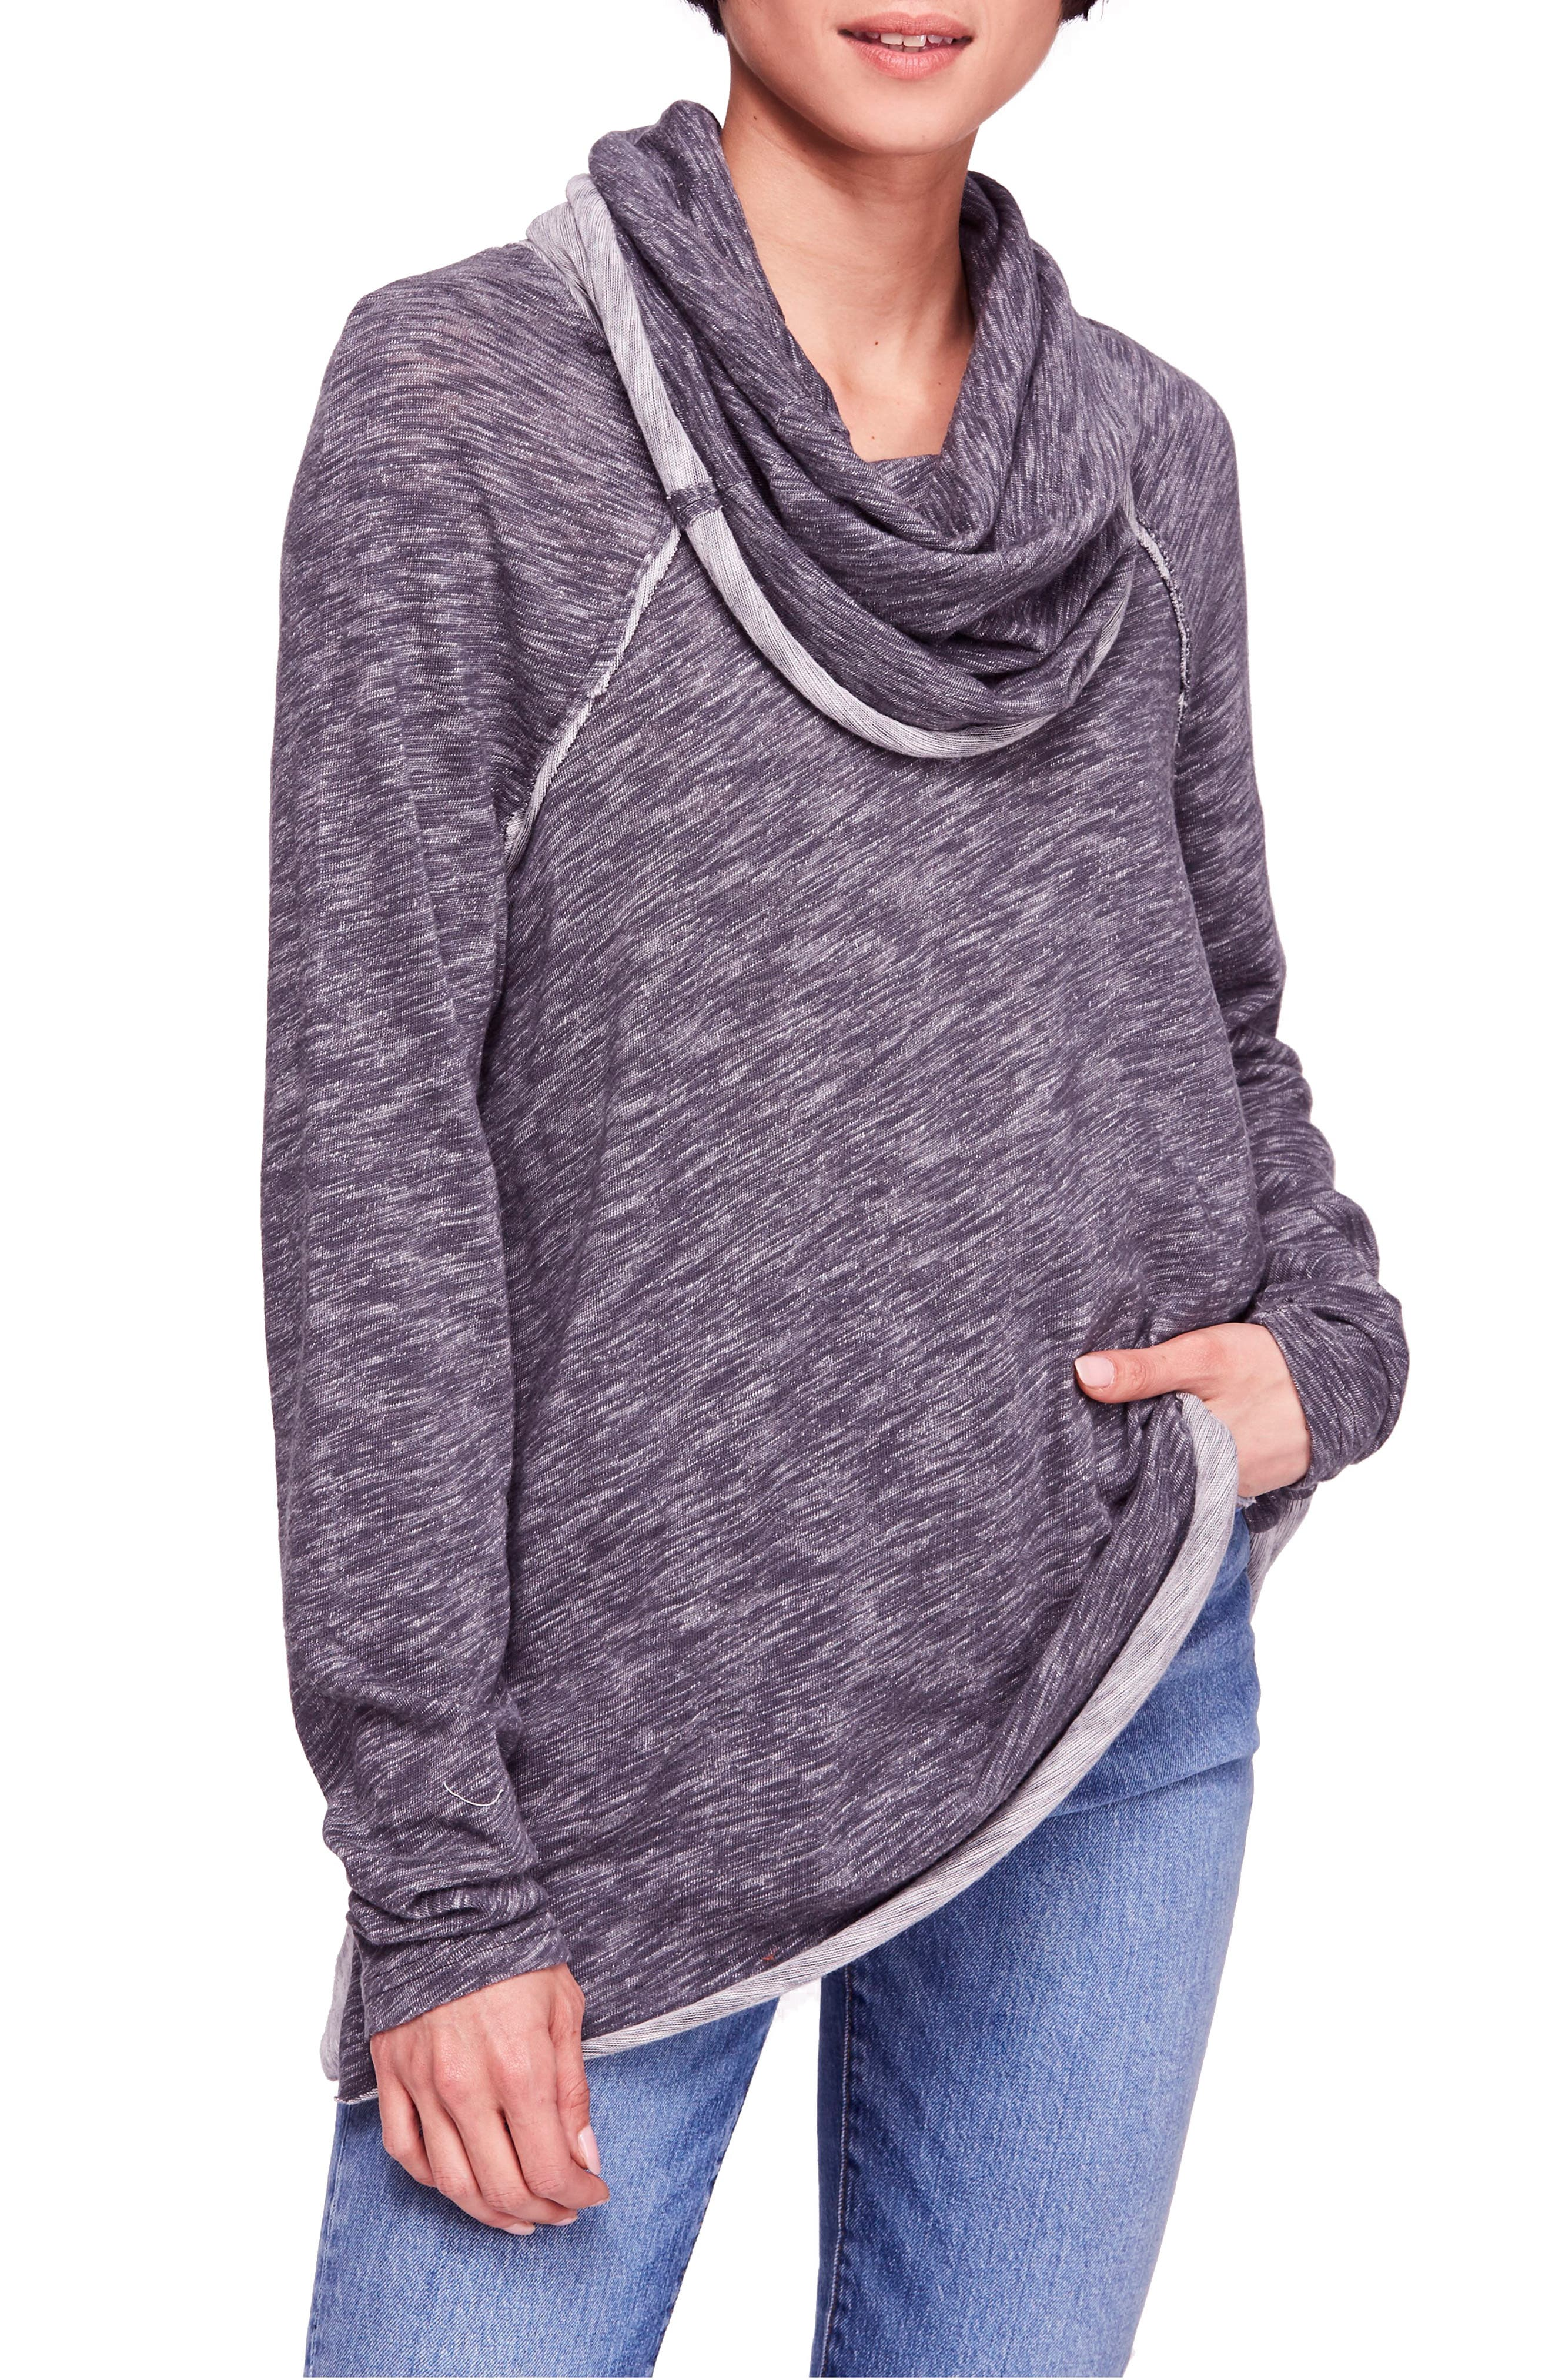 Cocoon Cowl Neck Top,                             Main thumbnail 1, color,                             Charcoal